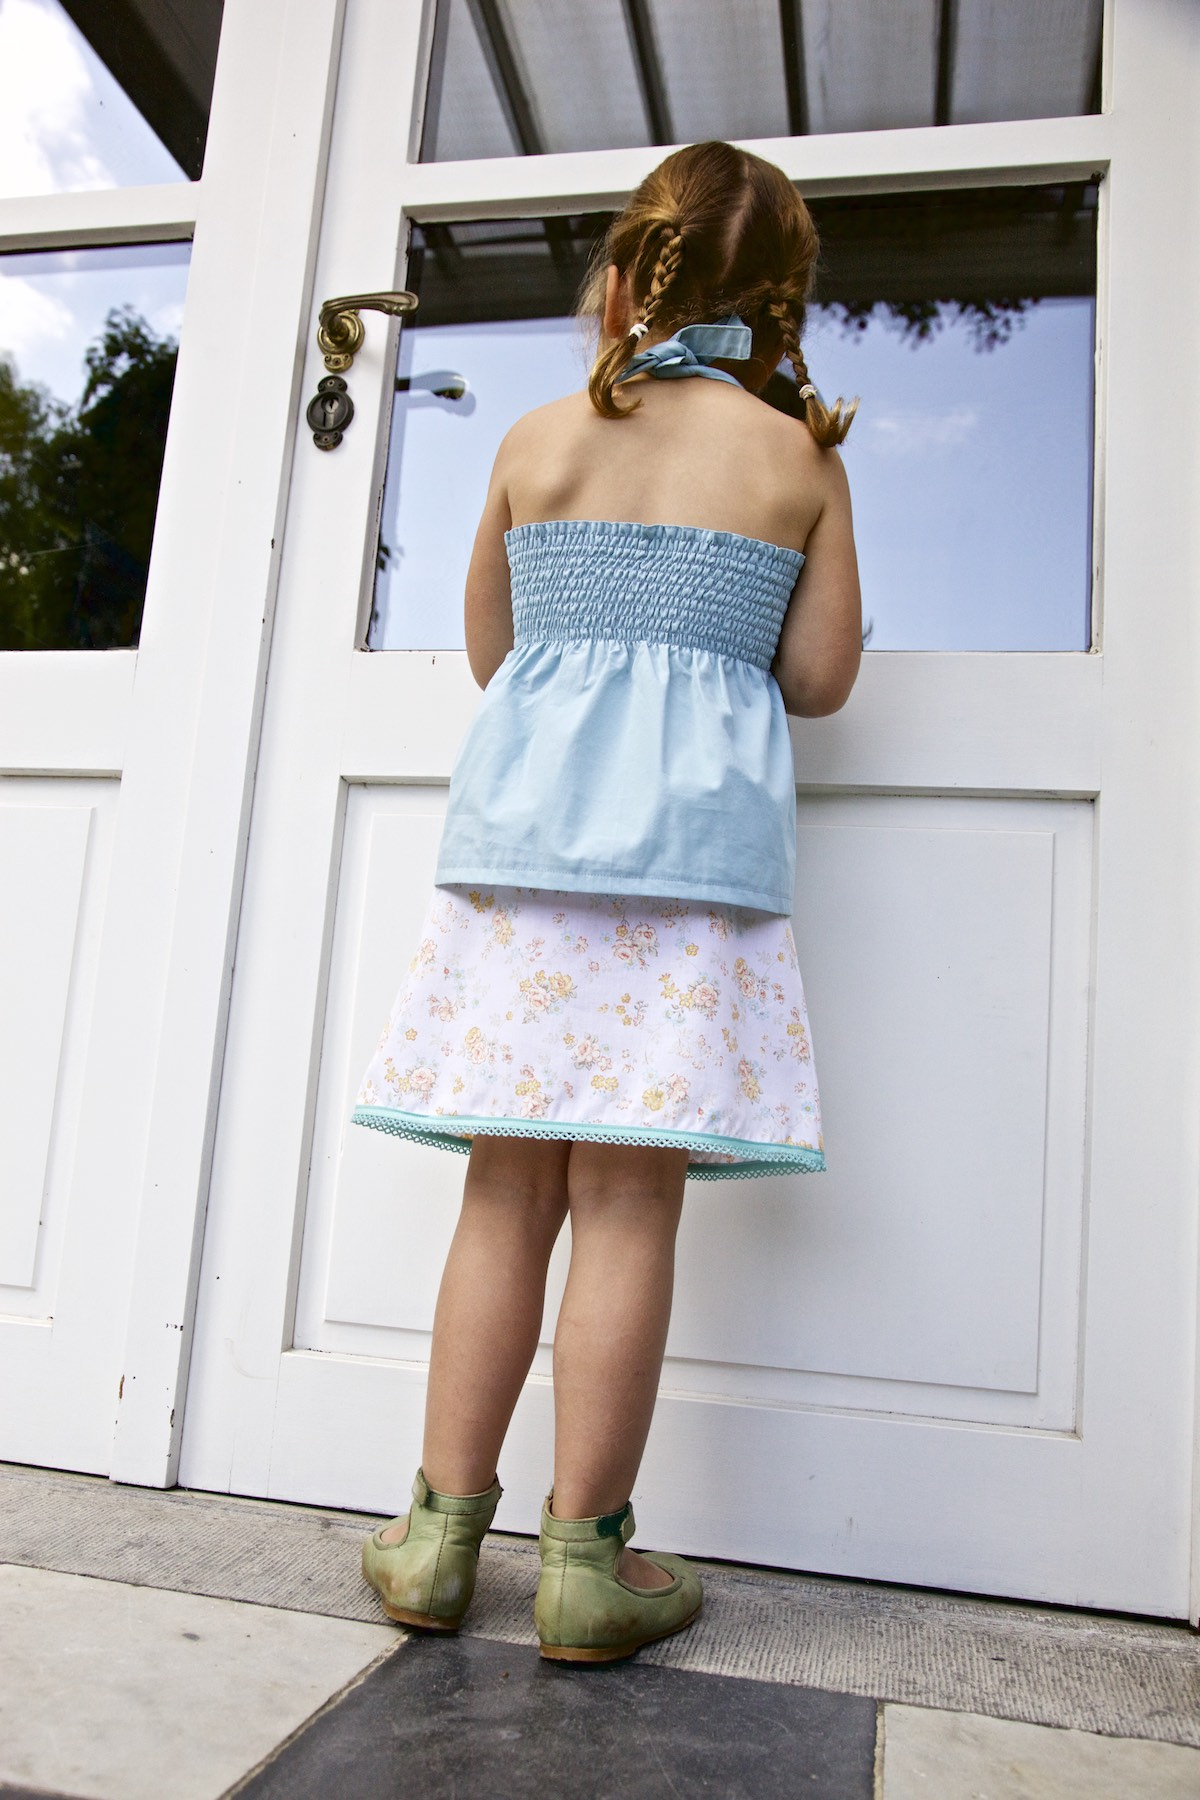 Compagnie-M_Nina_skirt_culottes_lucy_top 7